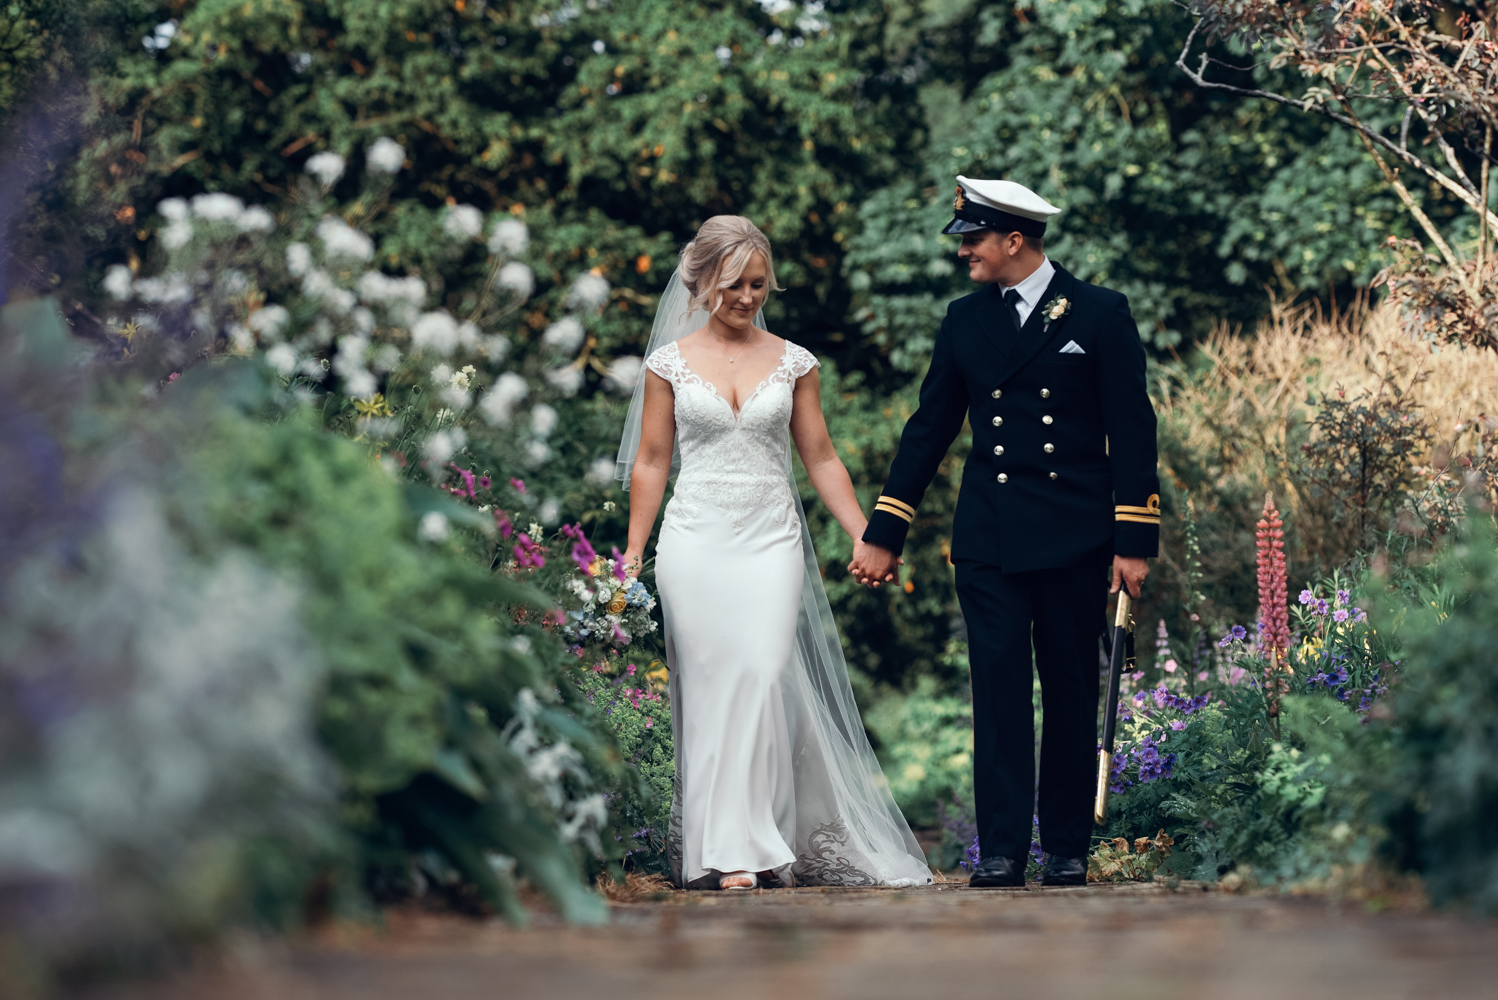 The bride and groom taking a relaxing walk through the amazing gardens at Askham Hall